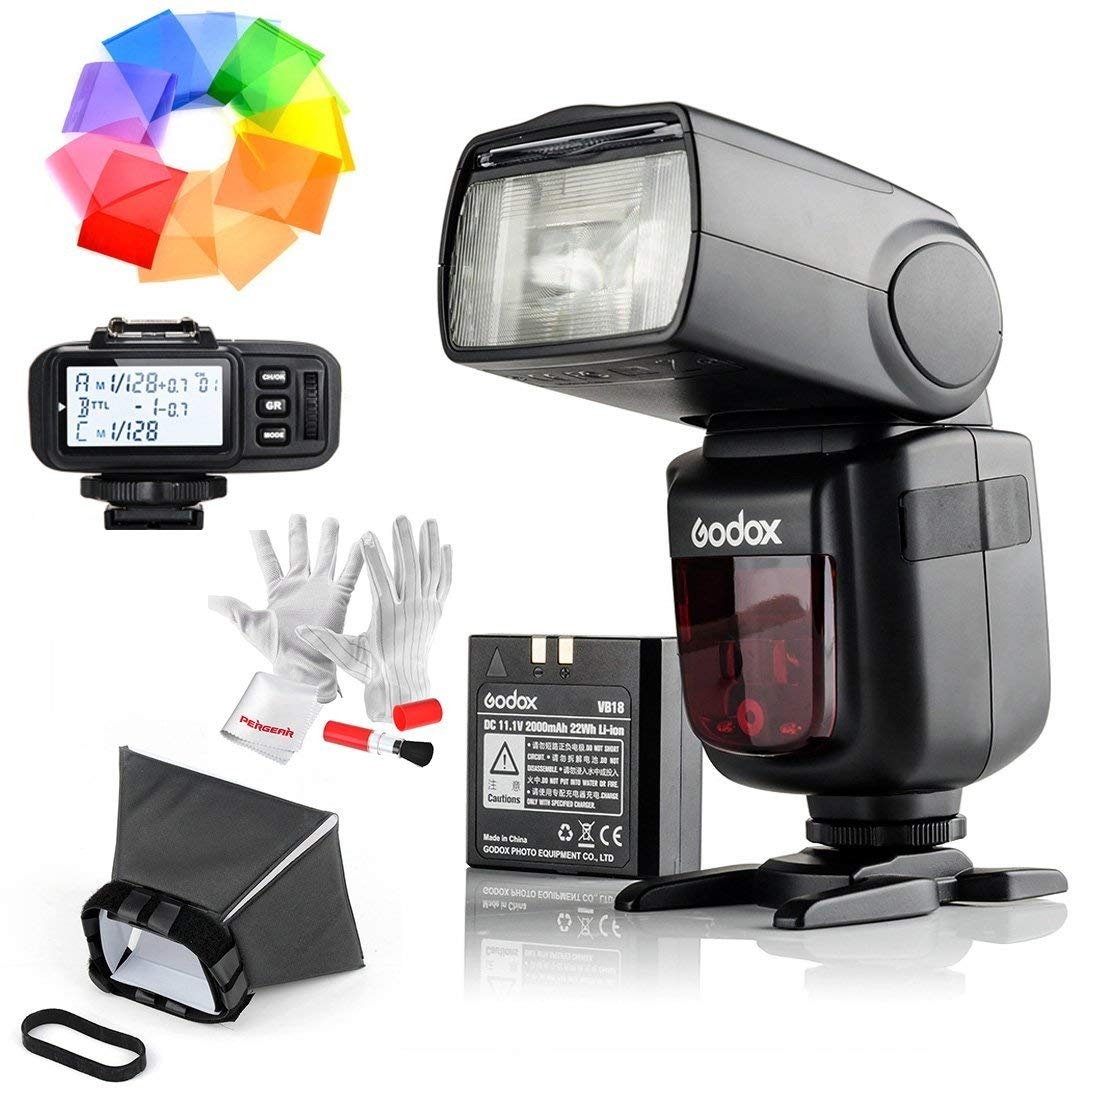 Godox Ving V860IIS 2.4G GN60 TTL HSS 1/8000s Li-on Battery Camera Flash Speedlite With X1T-S Flash Trigger for Sony - 1.5S Recycle Time 650 Full Power Pops Supports TTL/M/Multi/S1/S2 by Godox